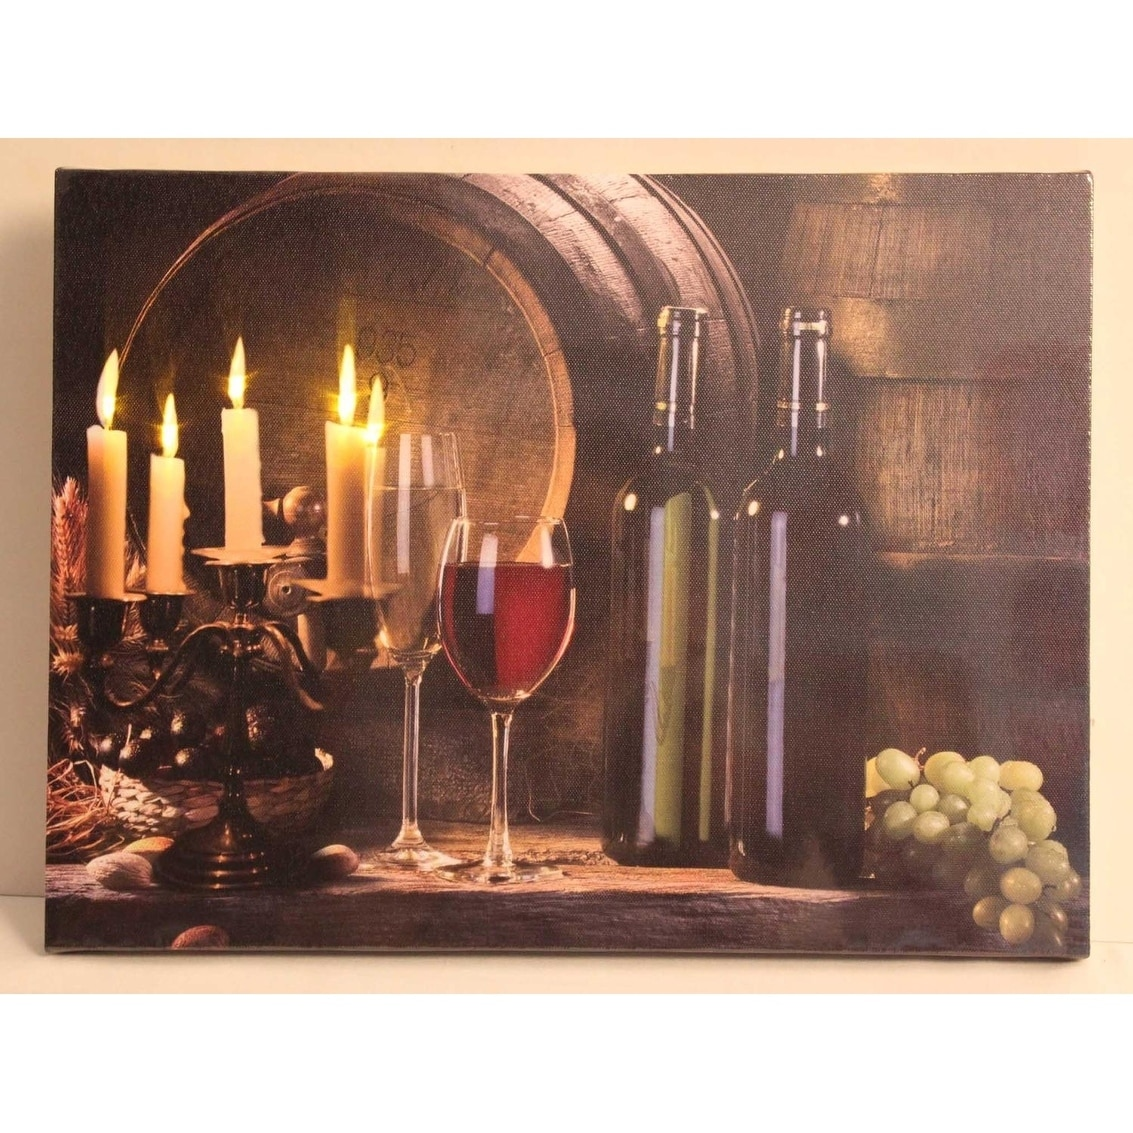 LED Wall Picture Canvas Art Picture Candles Motifs-LIGHT FLICKERS-OVP